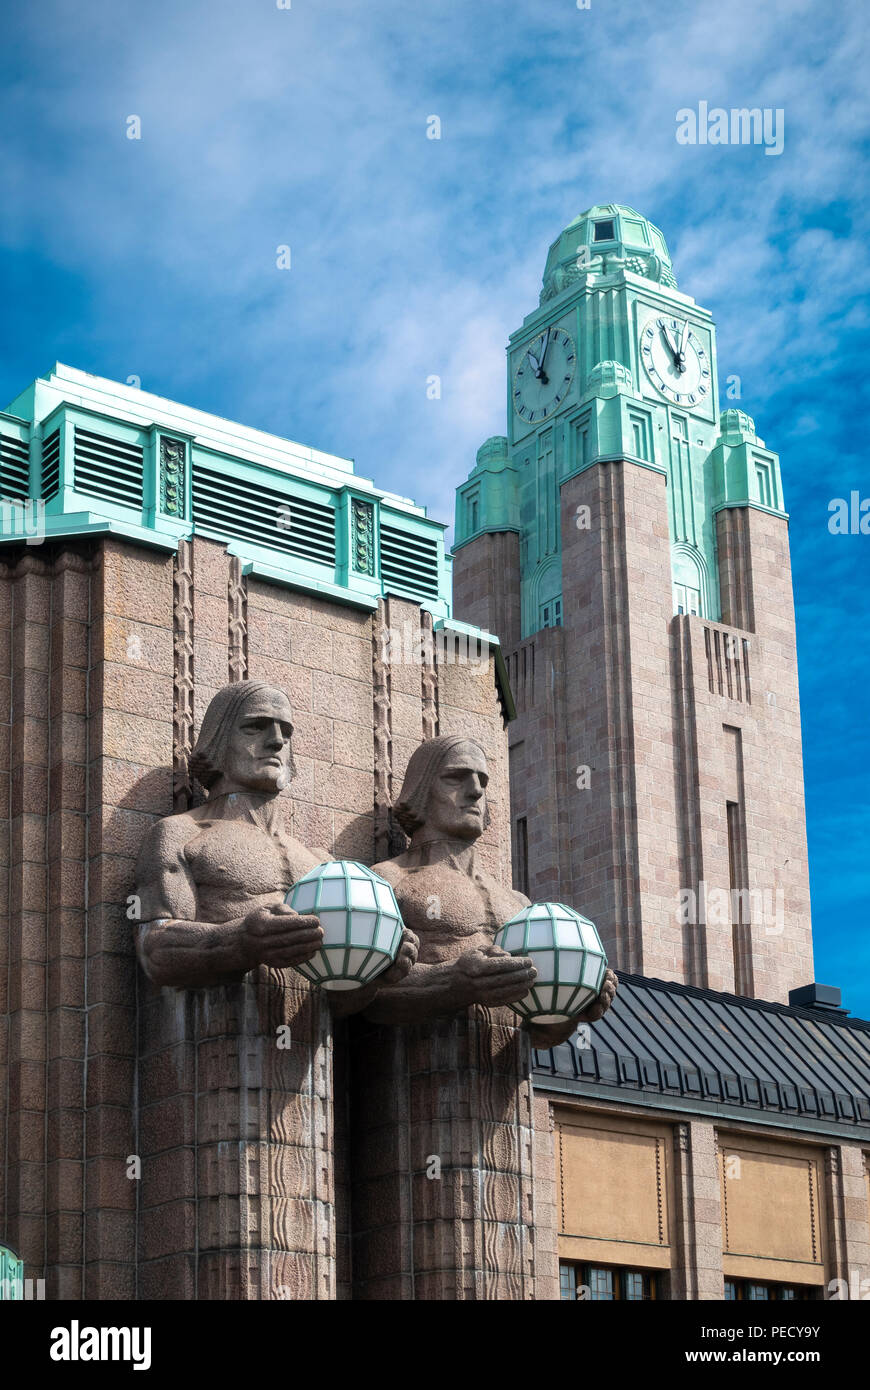 https://c7.alamy.com/comp/PECY9Y/central-railway-station-helsinki-with-two-stone-men-statues-holding-lamps-and-the-station-clock-tower-PECY9Y.jpg